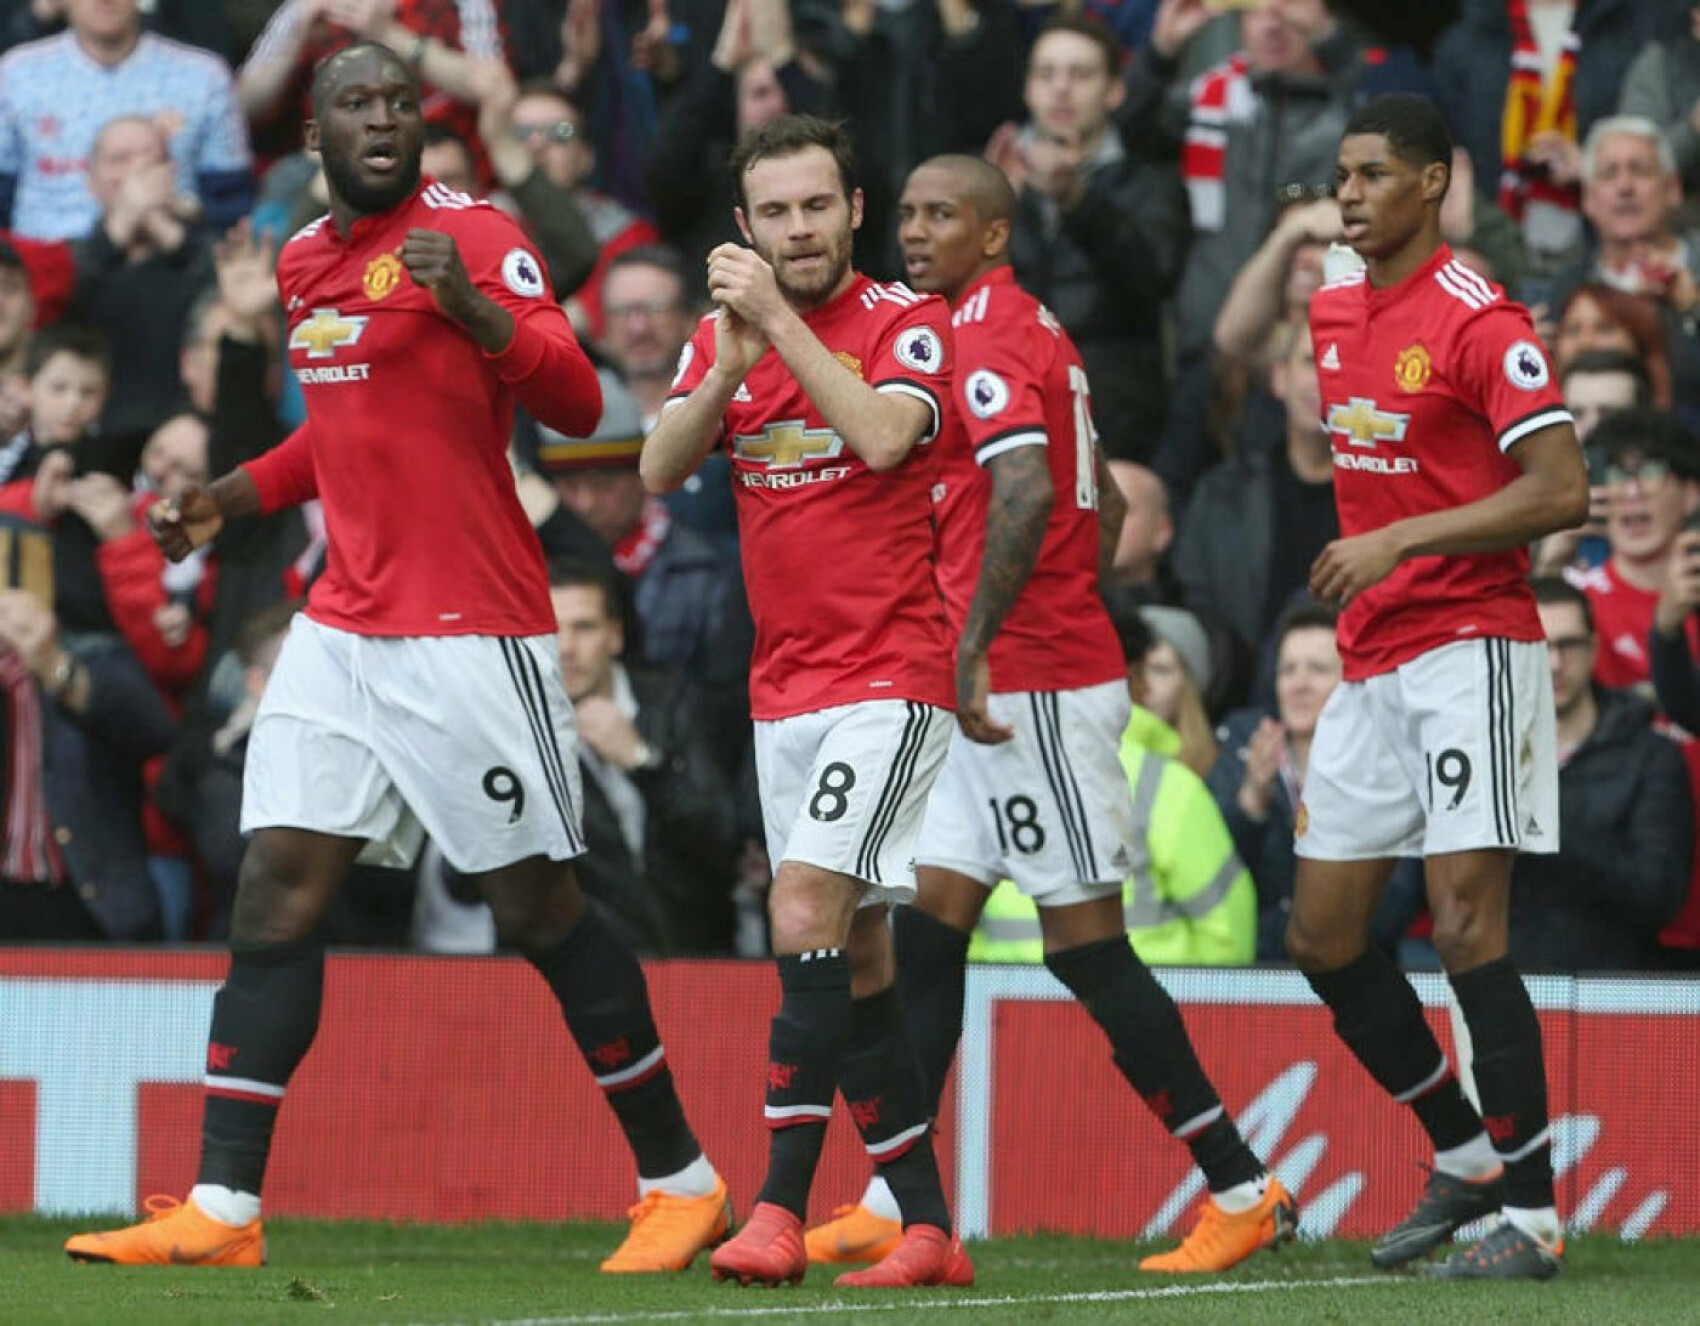 Will Man Utd recover from the unusual slump and mount a title challenge?